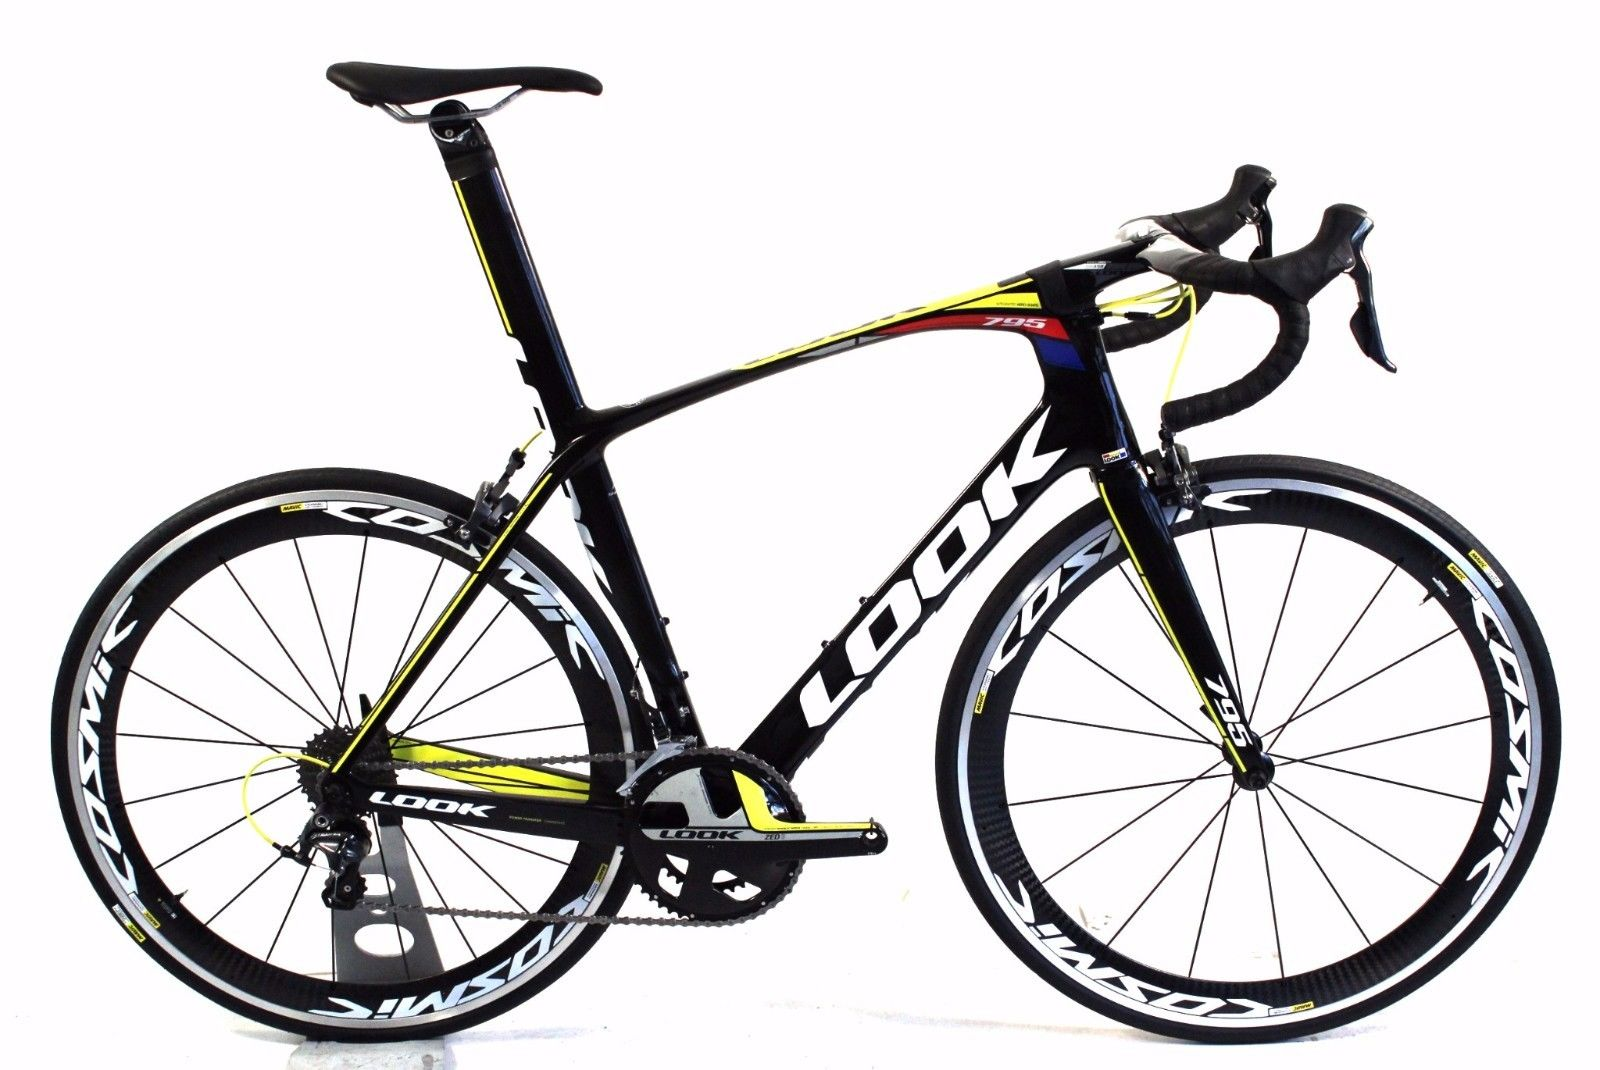 NEW LOOK 795 Light Carbon Road Bike ...$2, 300 USD